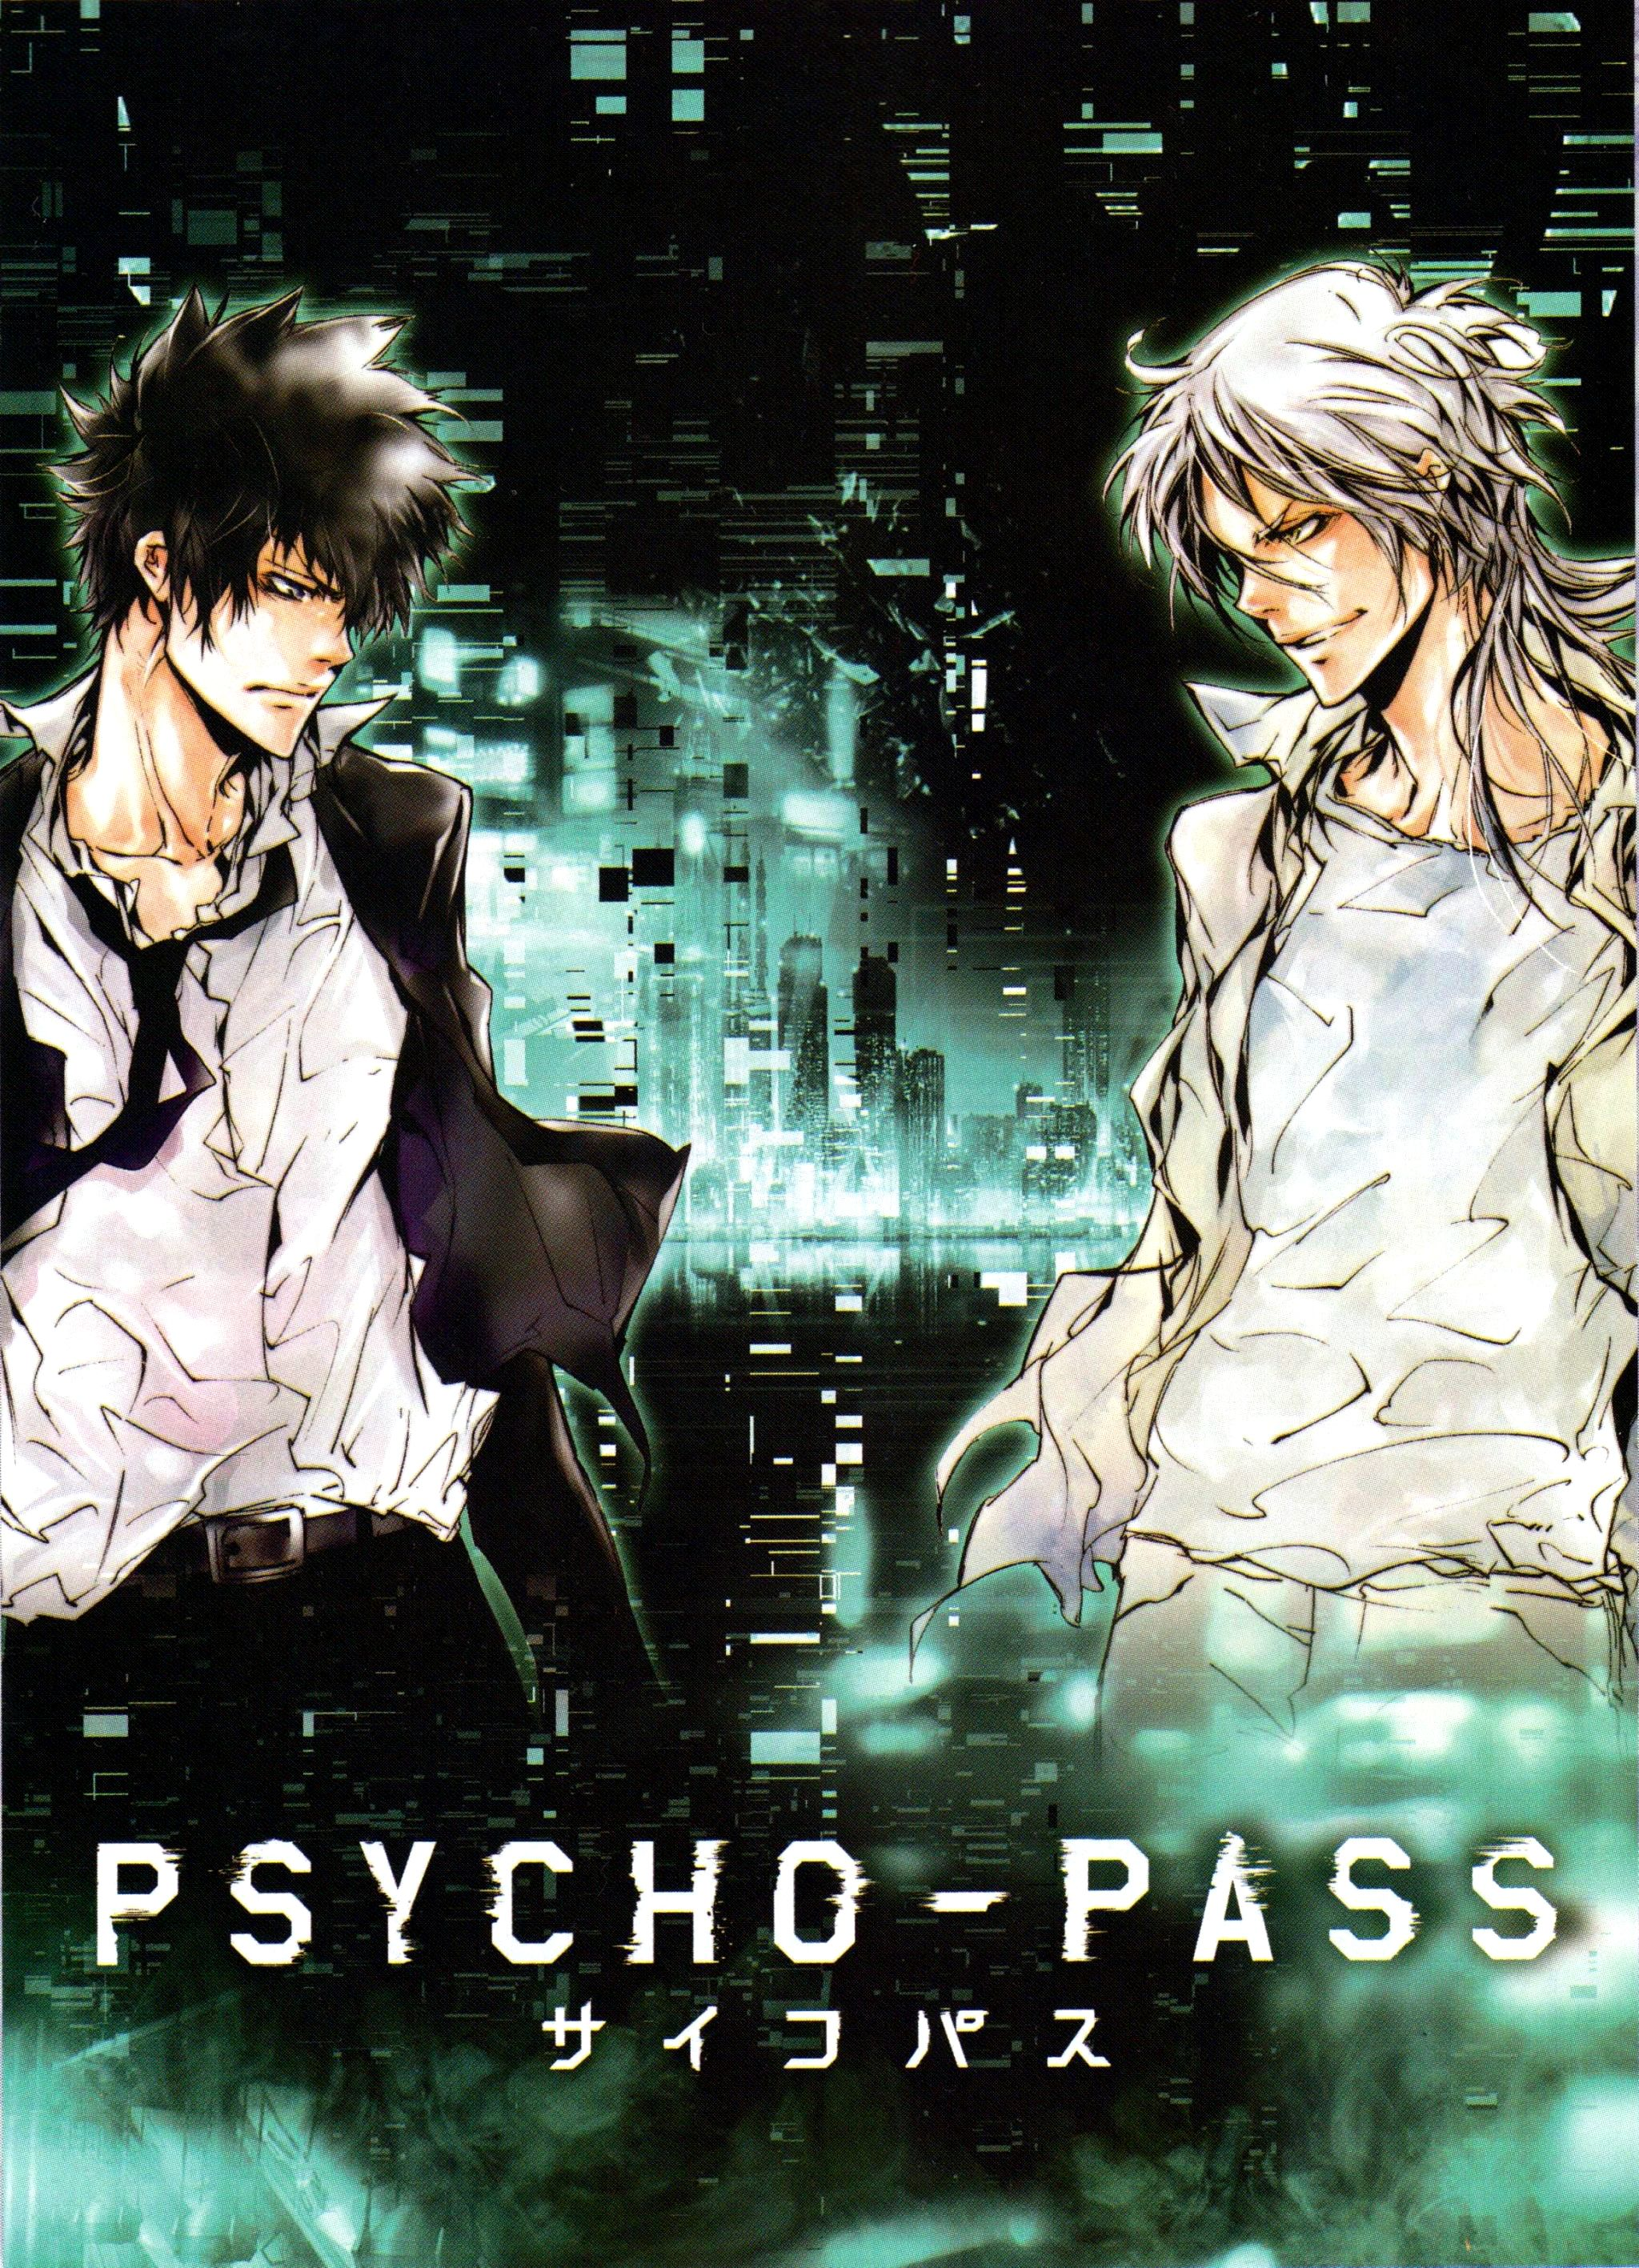 PSYCHOPASS. I just watched this one and I must say, this